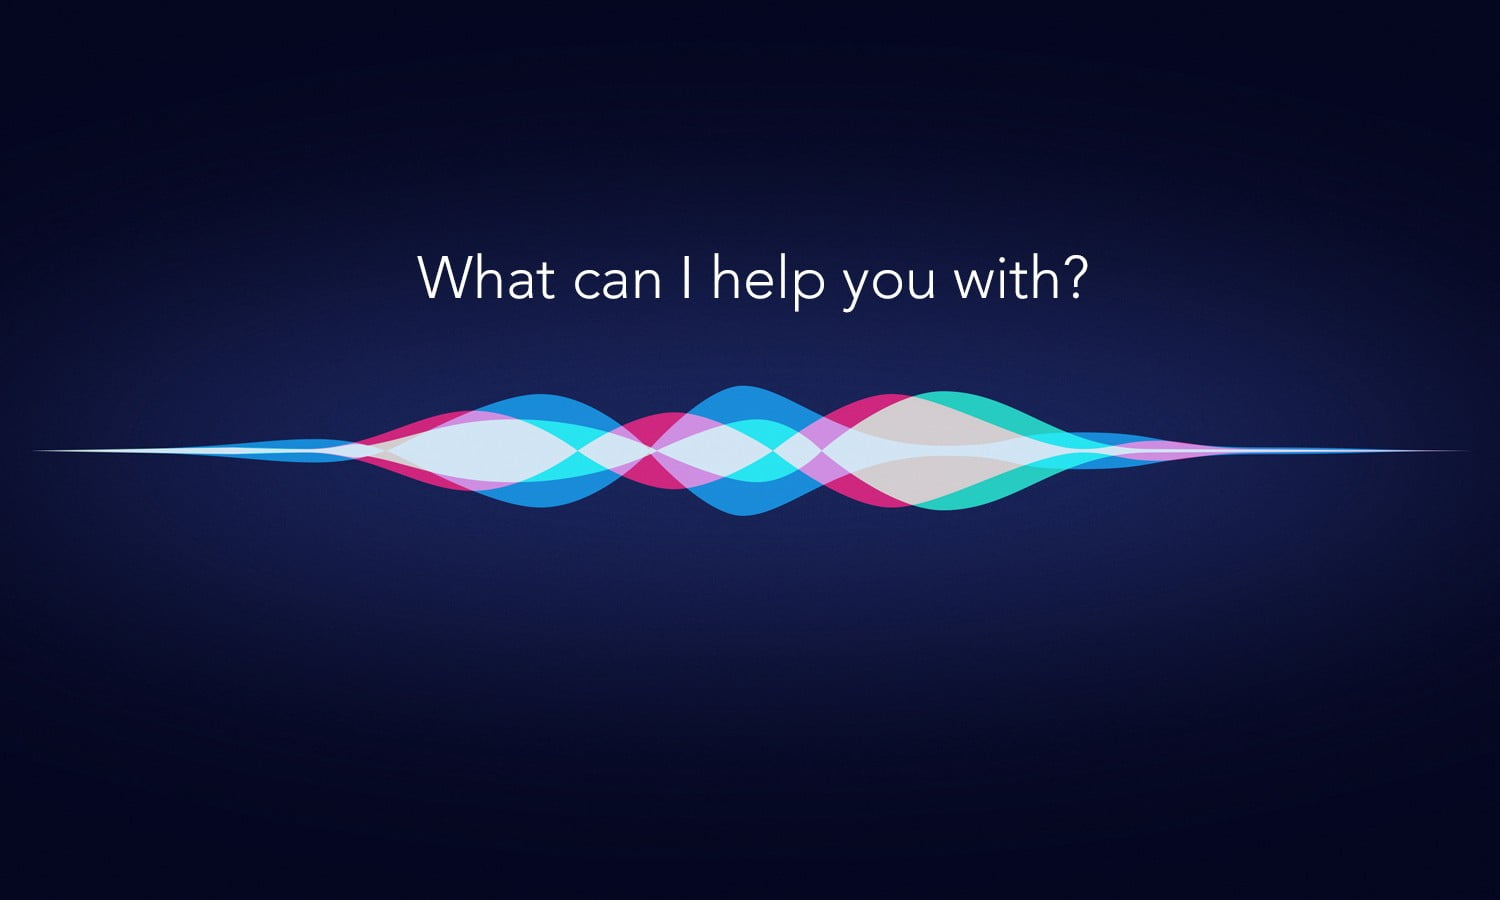 How to use Siri when iPhone is face down or covered?